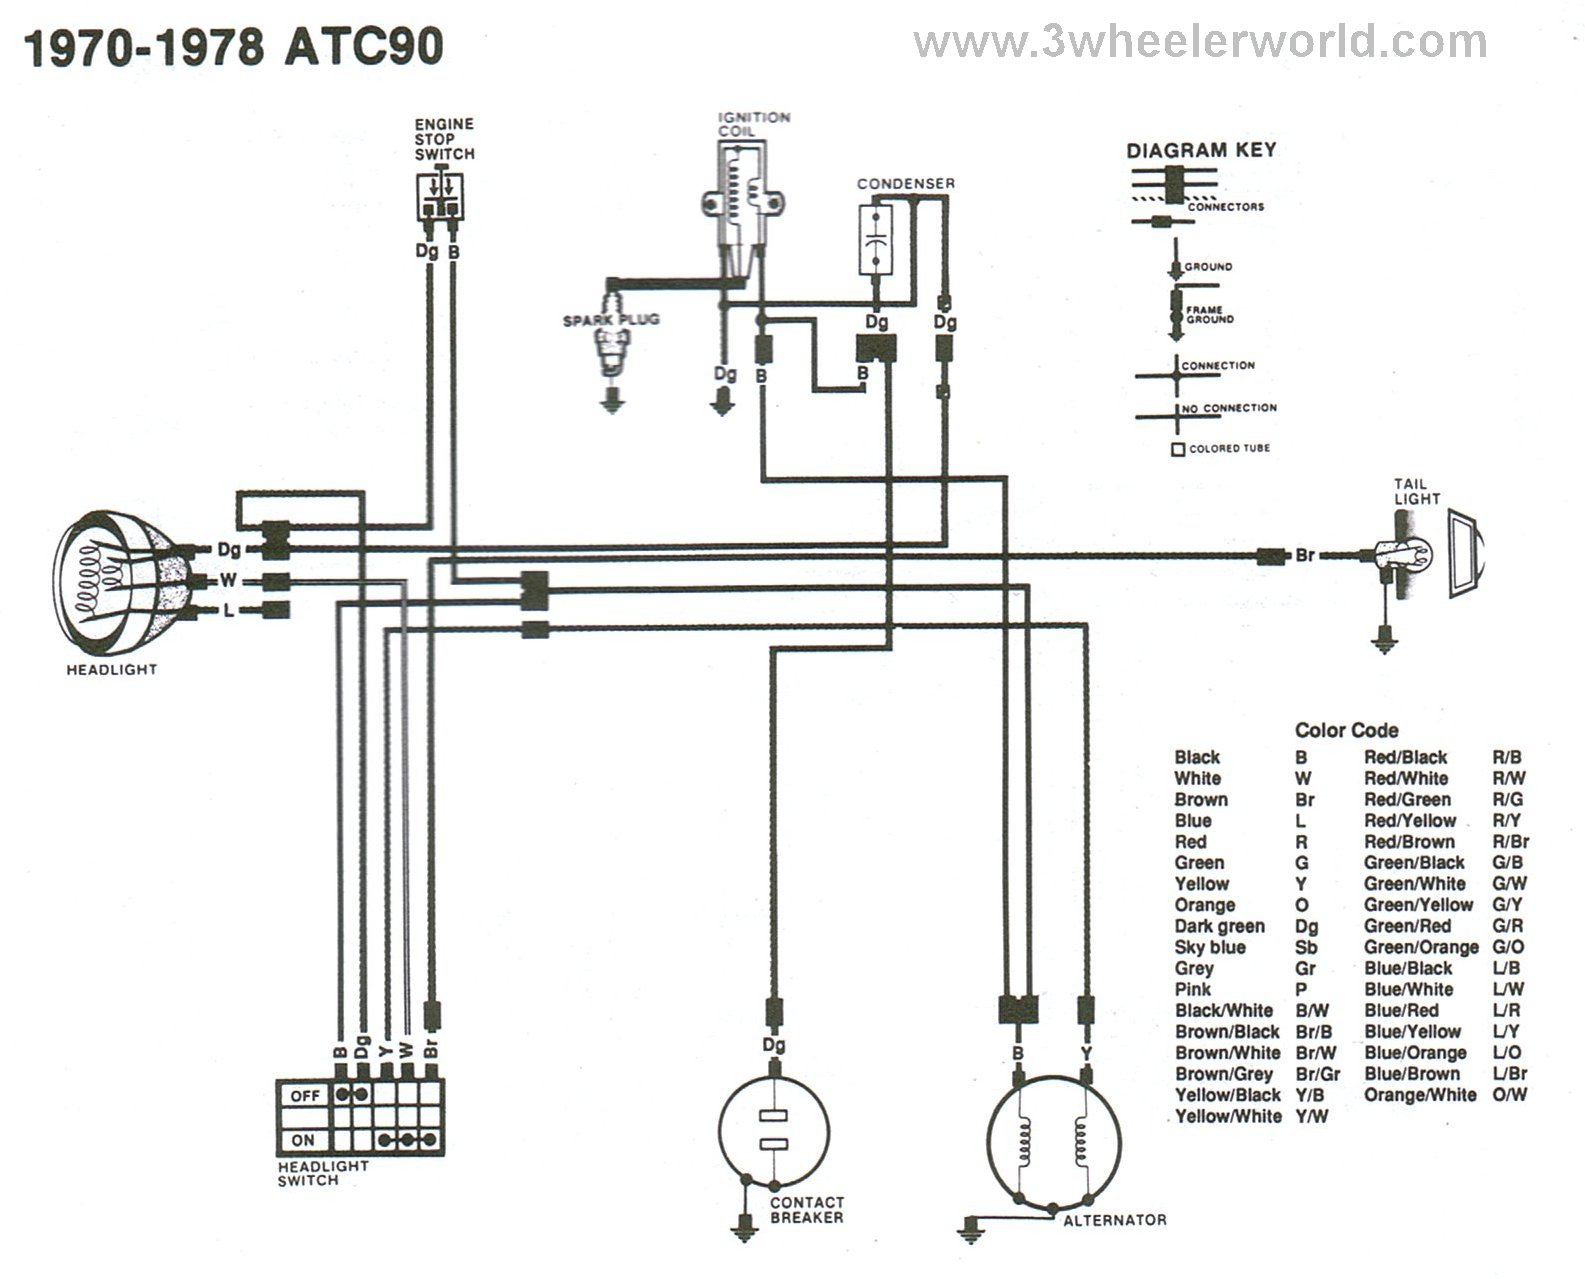 Pace Arrow Wiring Diagrams Diagram Will Be A Thing 1985 3wheeler World Honda Atc 1989